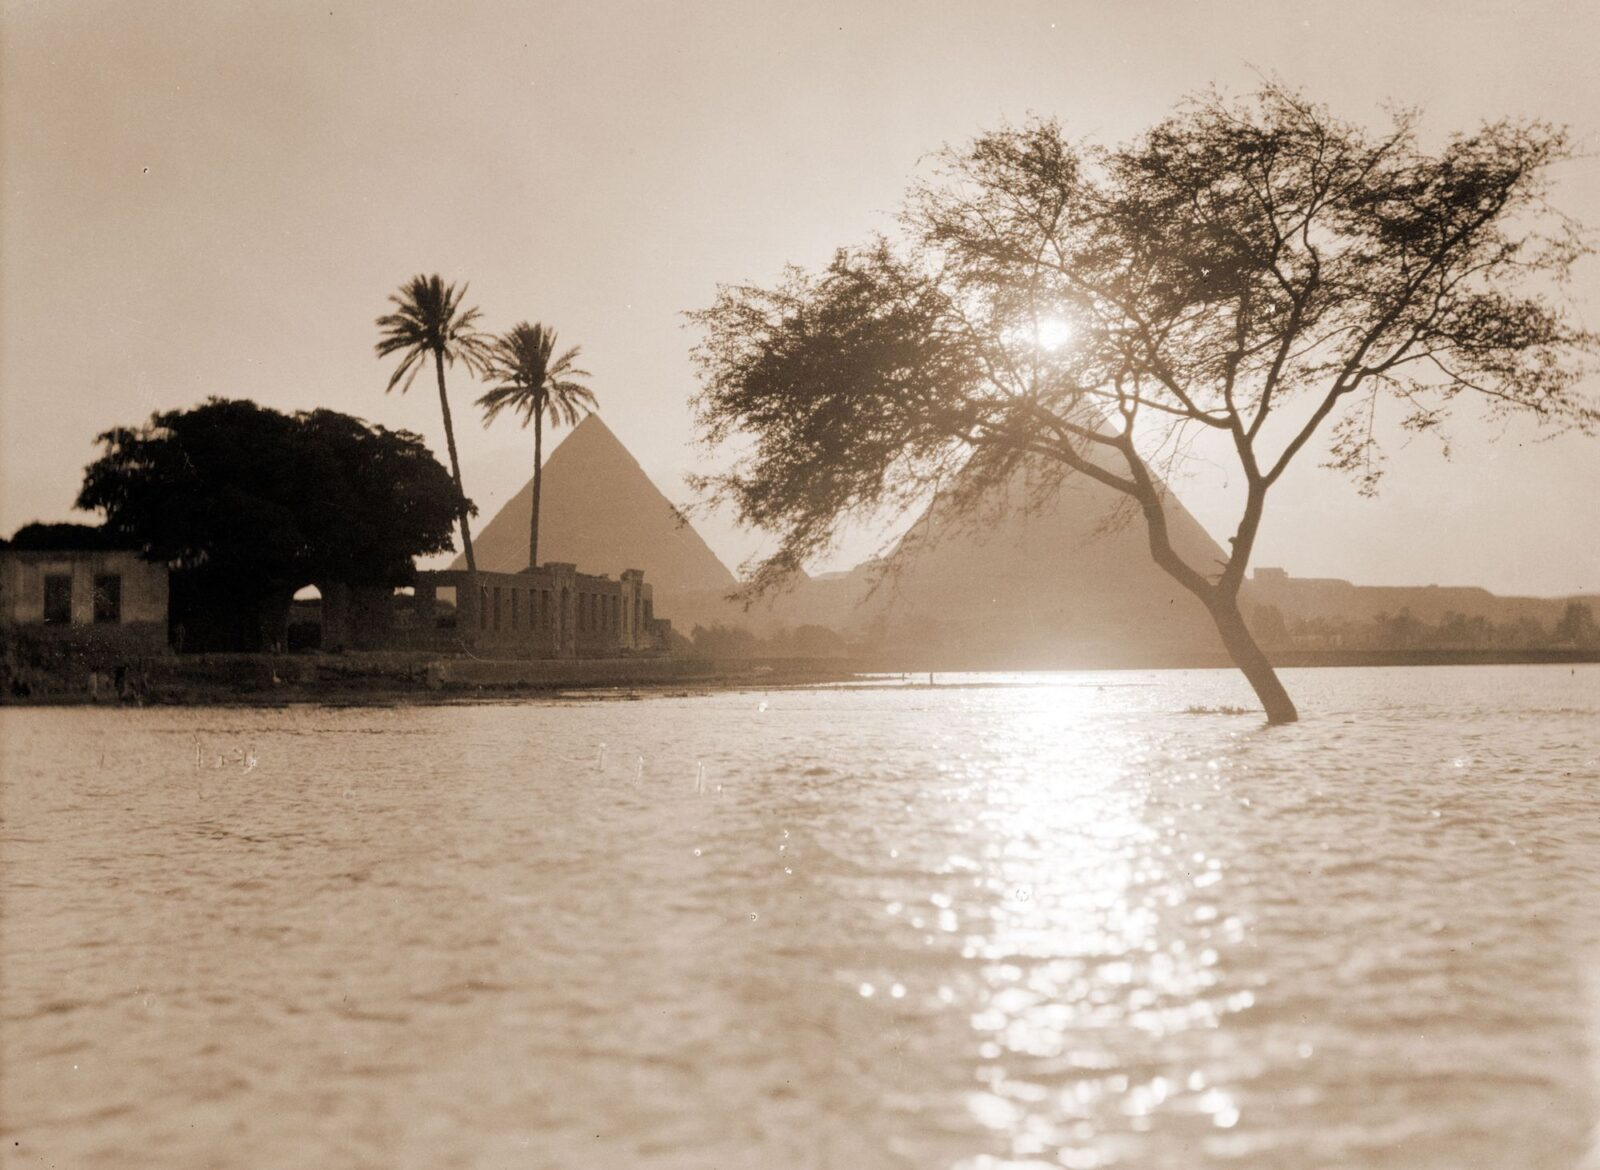 The Flooding of the Nile